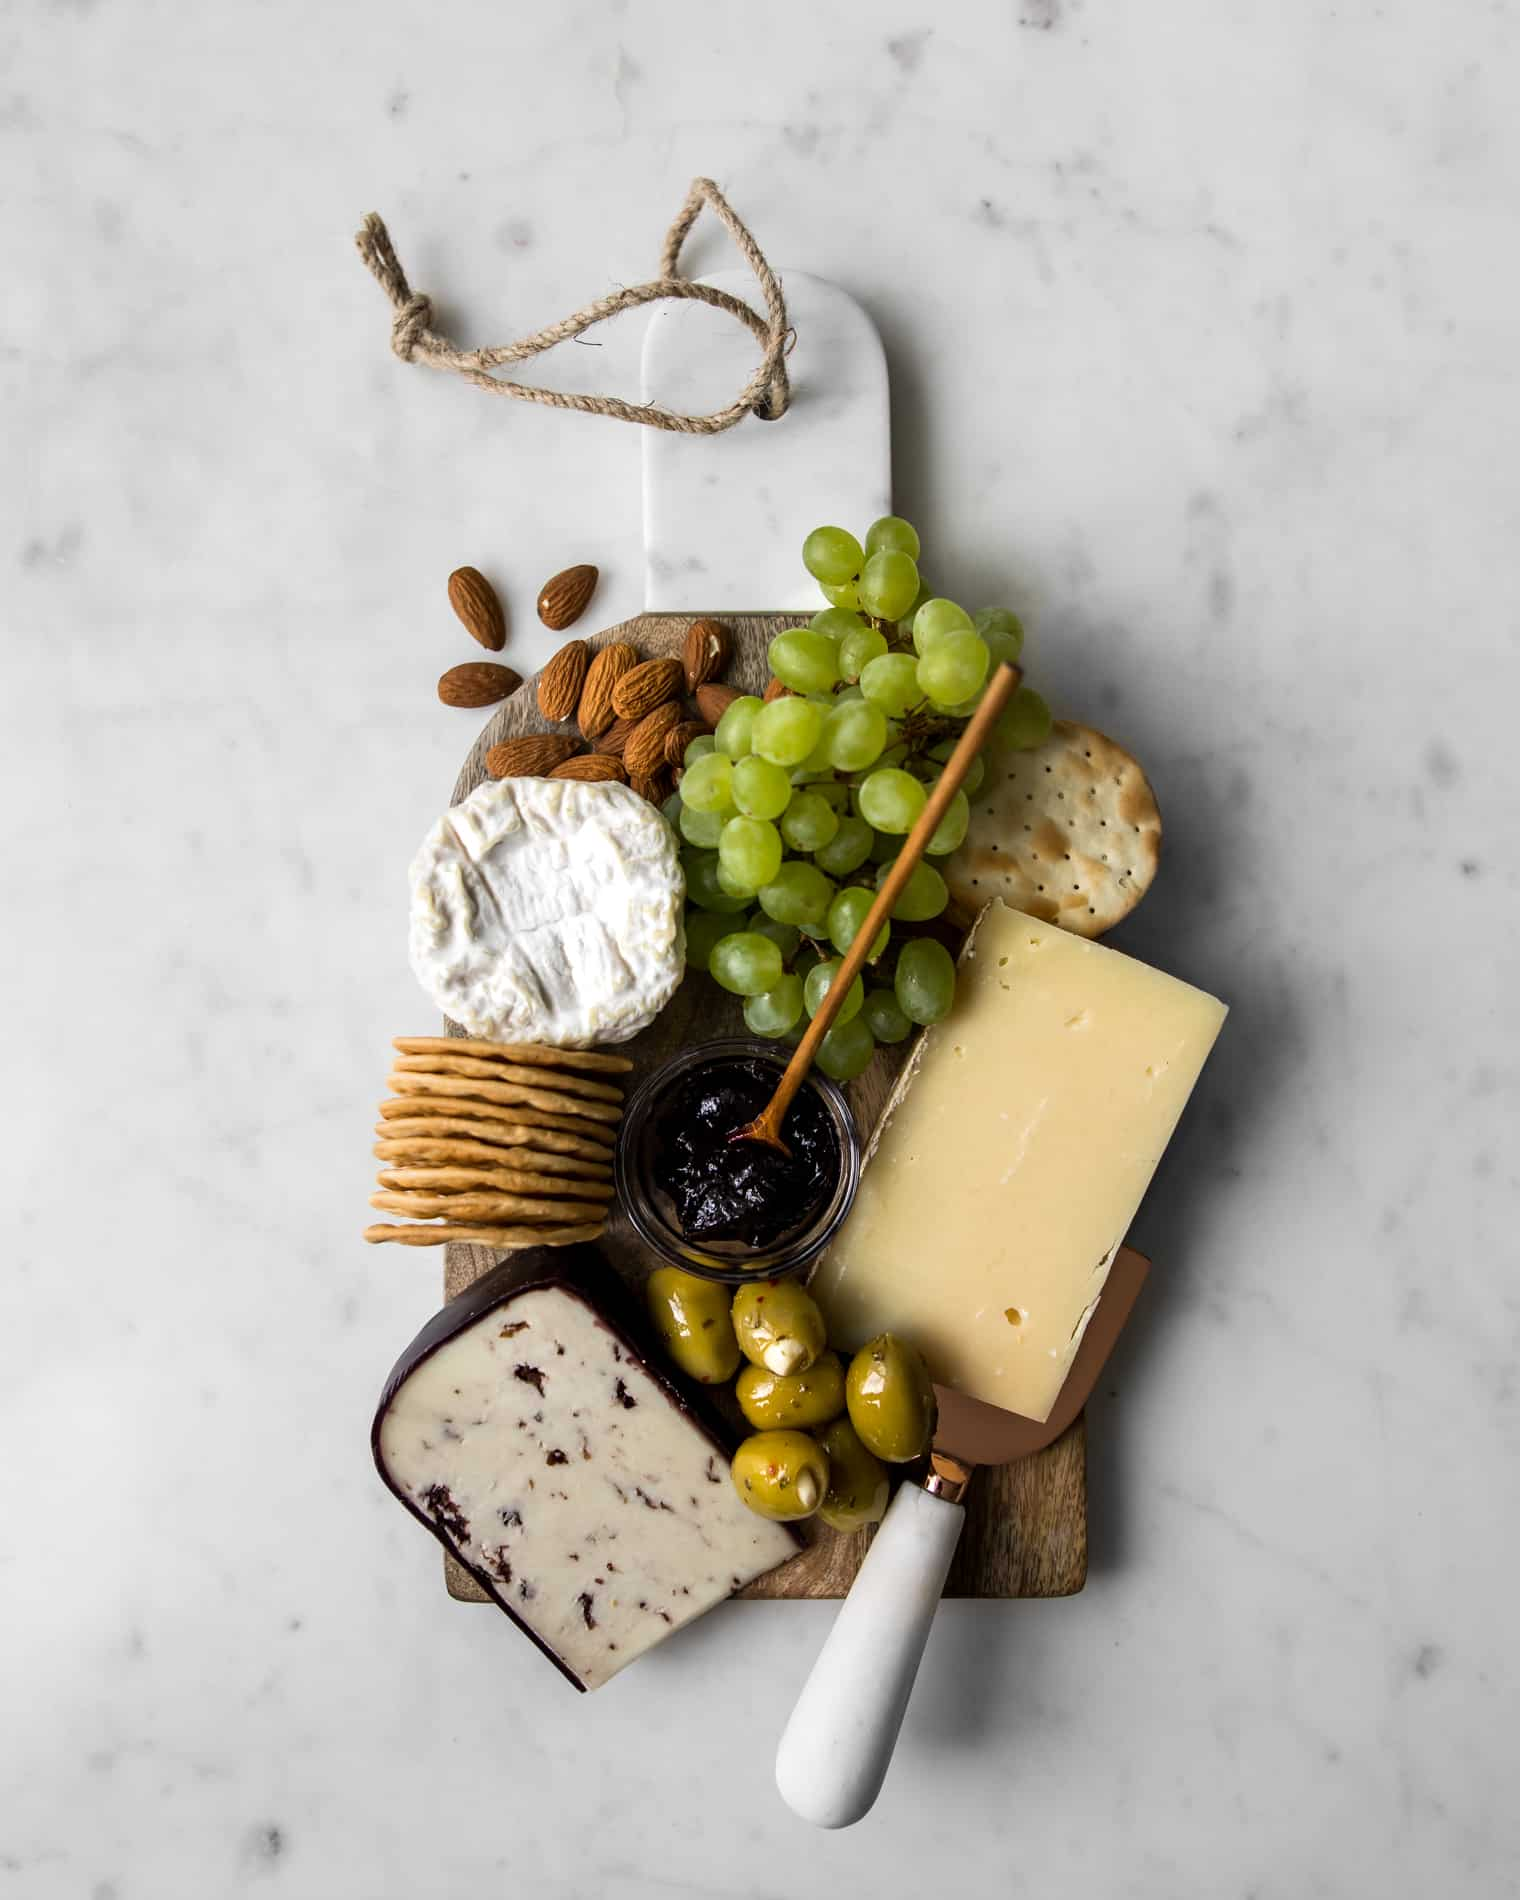 Flat lay of cheeseboard with grapes, three cheeses, almonds, grapes, olives and jelly